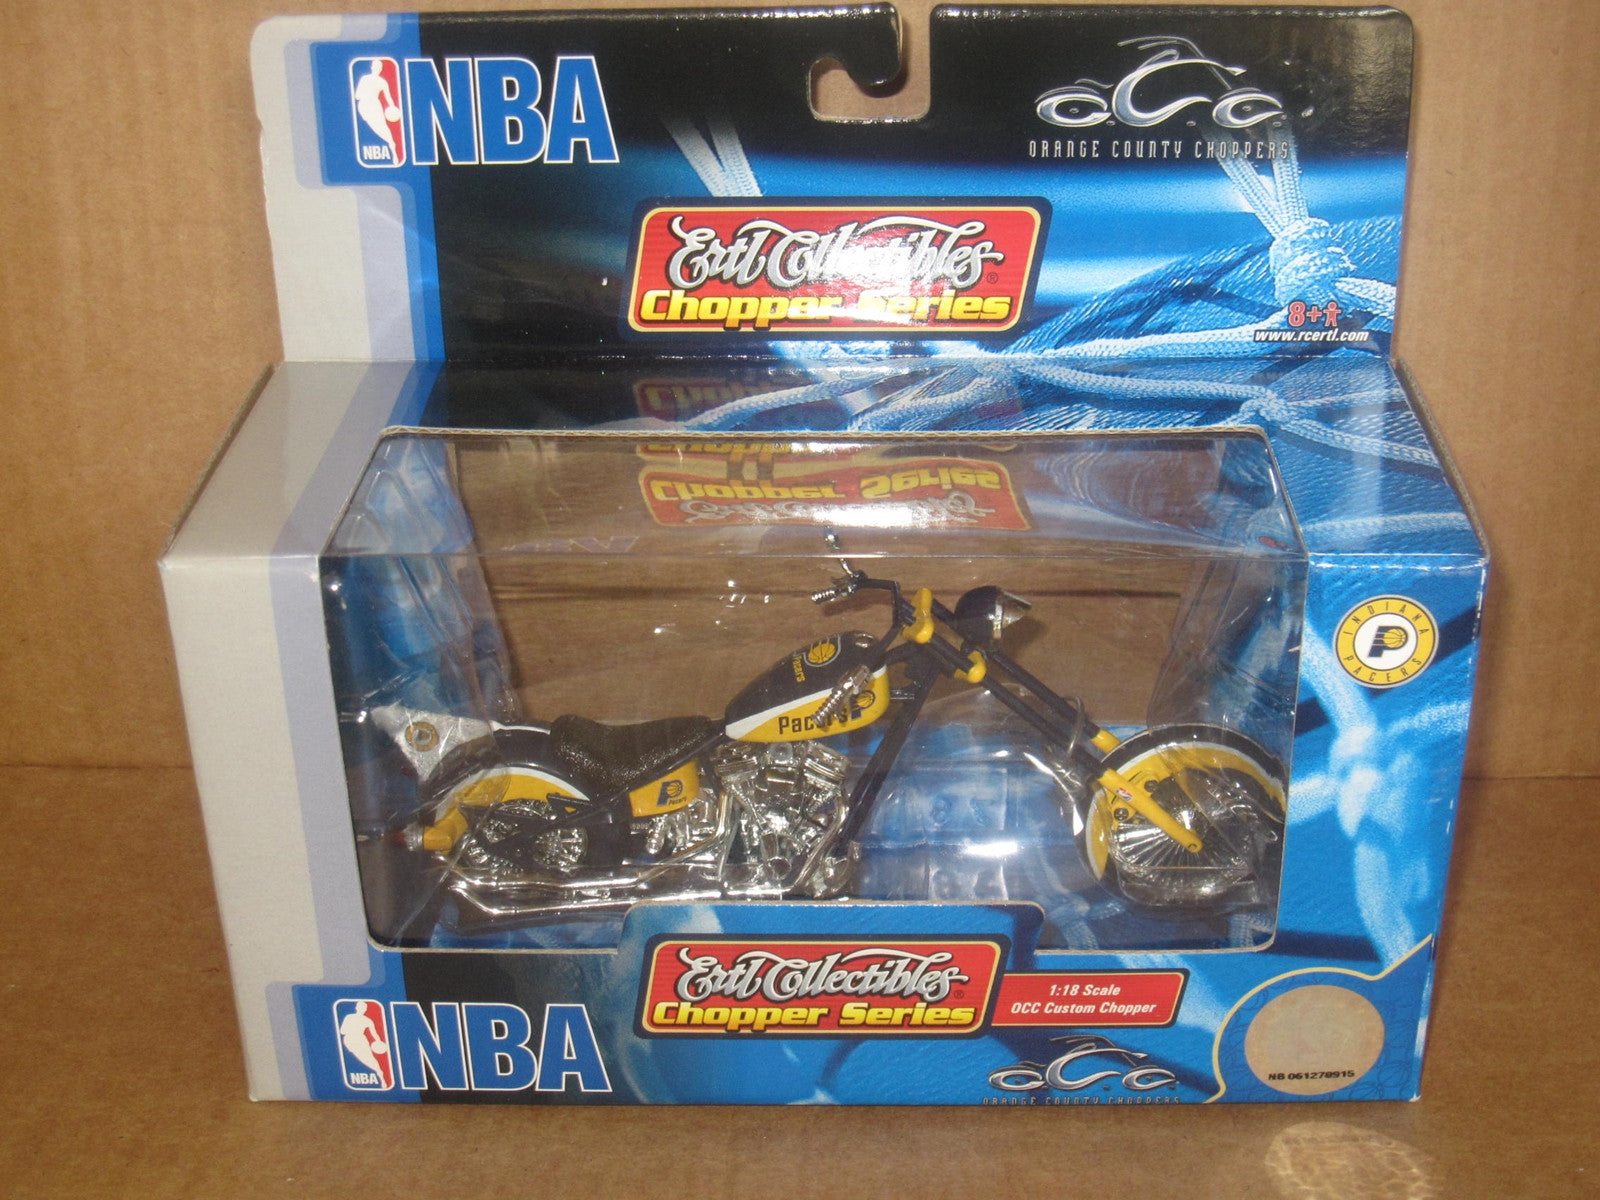 Indiana Pacers Orange County Choppers Diecast ERTL Custom 1:18 Chopper - Vintage Indy Sports